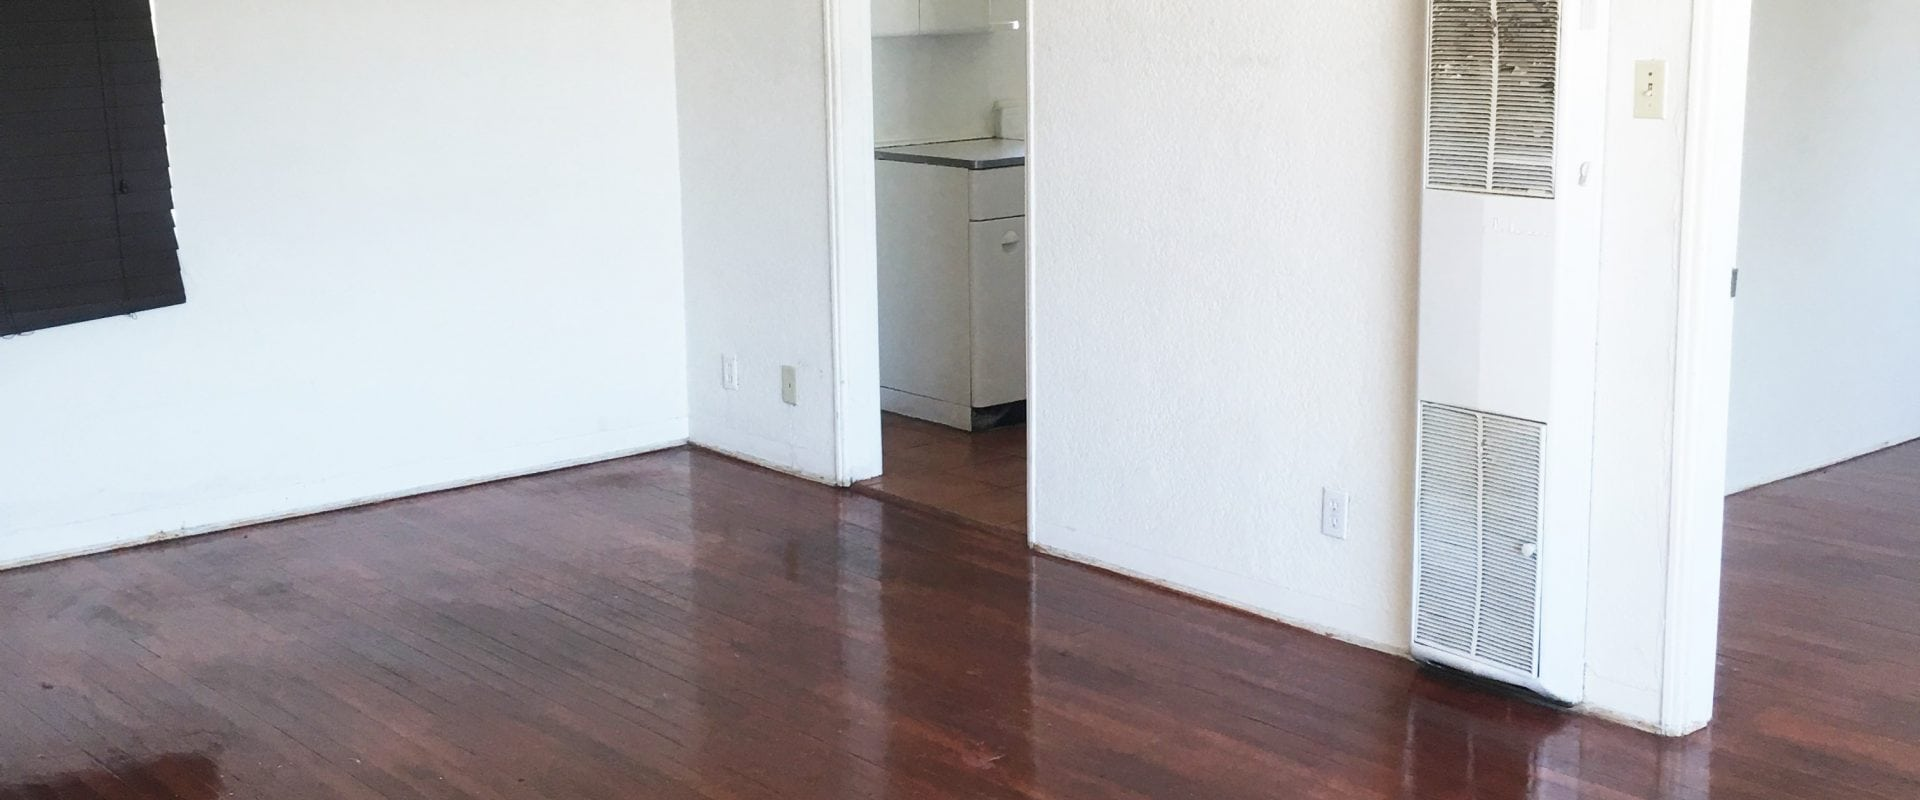 716 W. Court Ave., Las Cruces, NM  88005